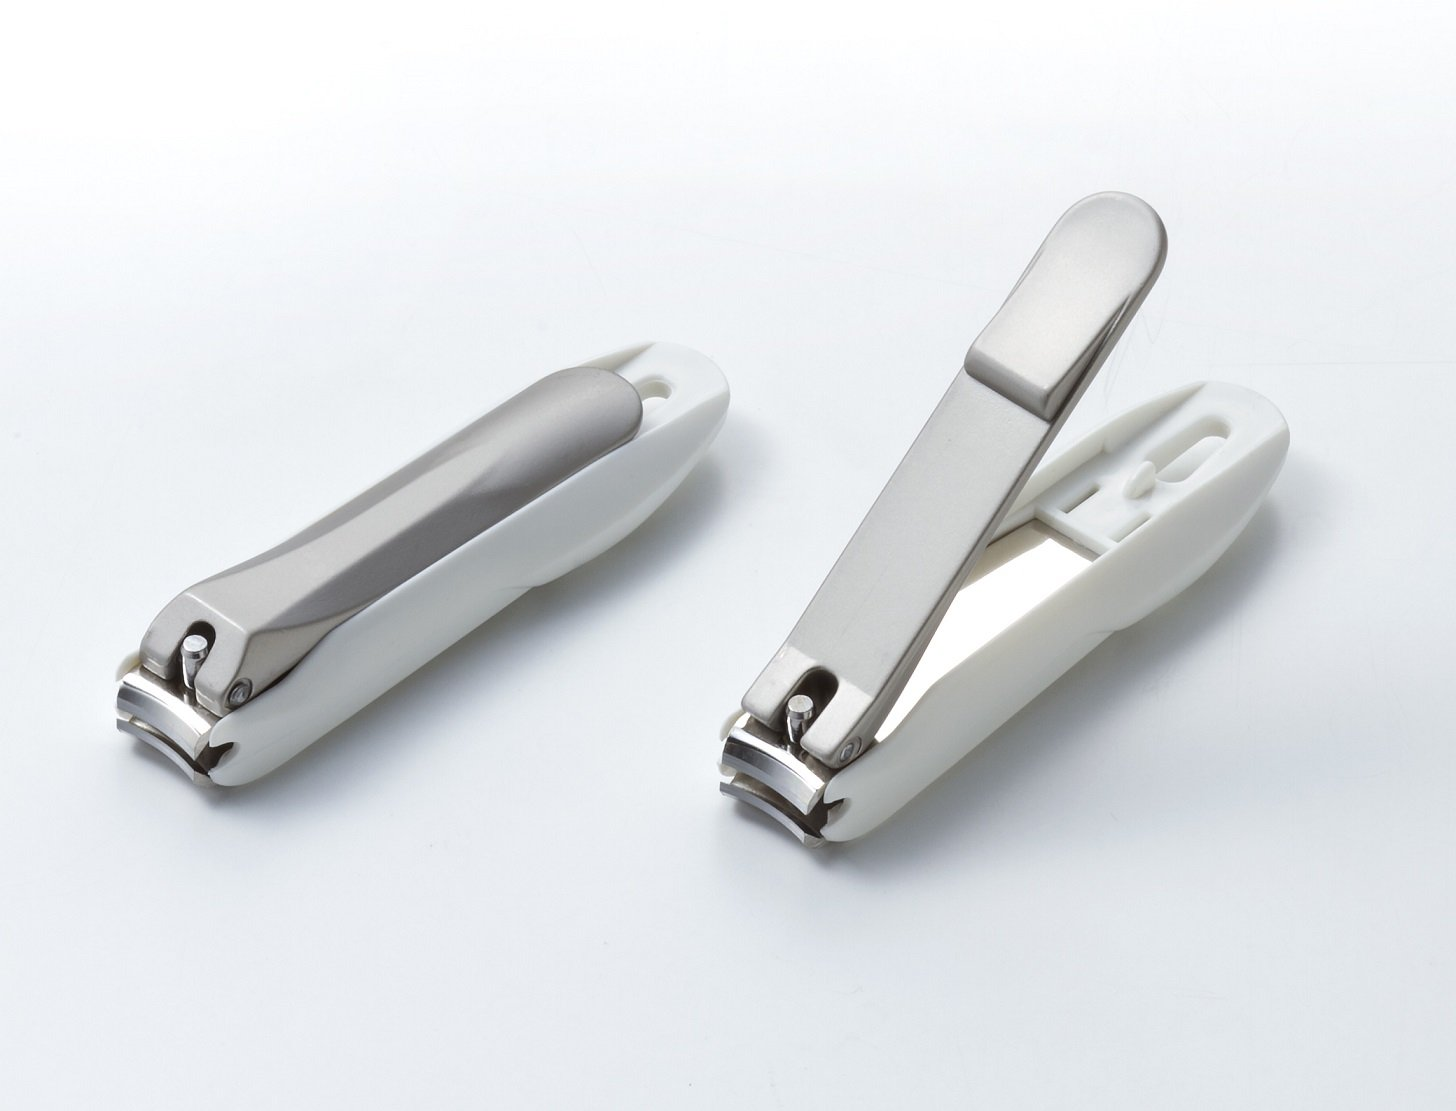 Japan Health and Beauty - S size G-1200 nail clippers made craftsmanship stainless *AF27*